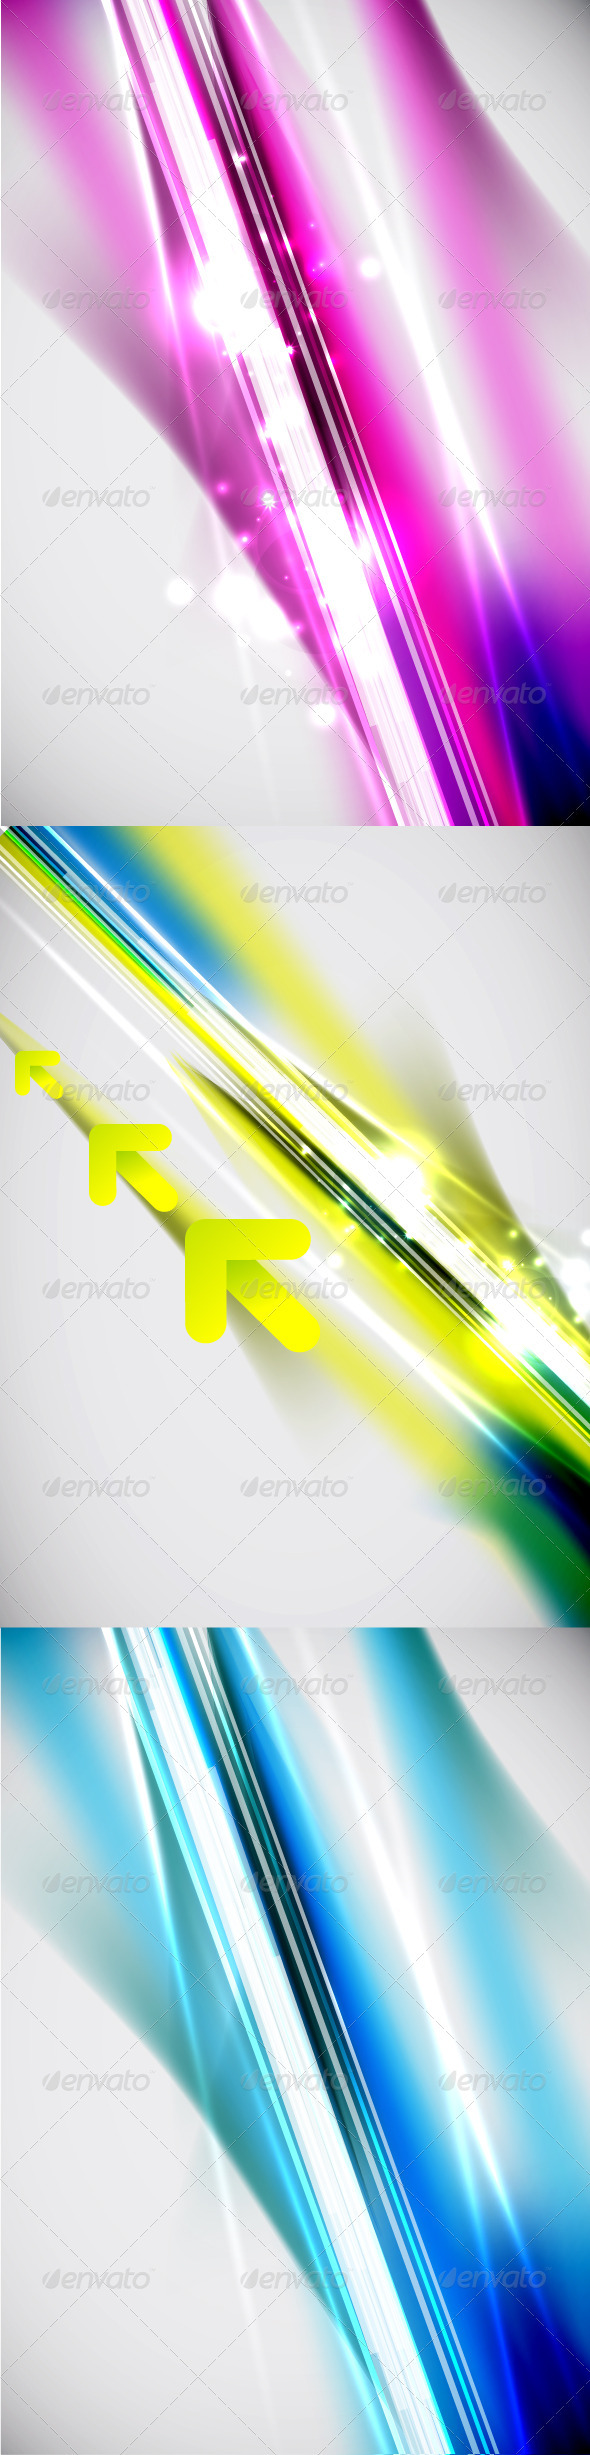 GraphicRiver Shiny Motion Backgrounds 3298566